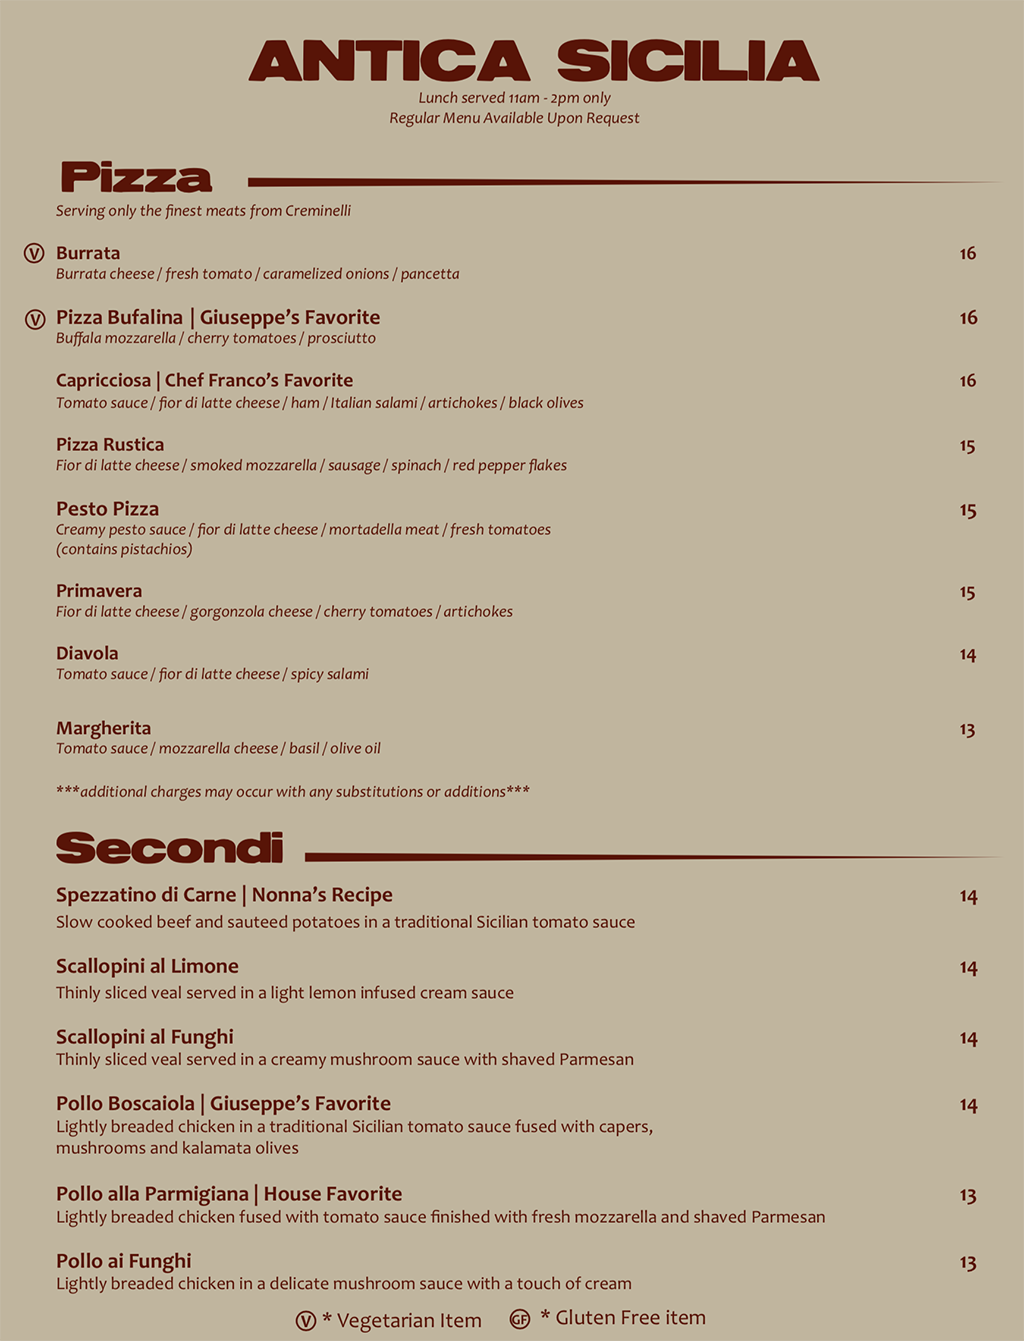 Antica Sicilia lunch menu - pizza, entrees